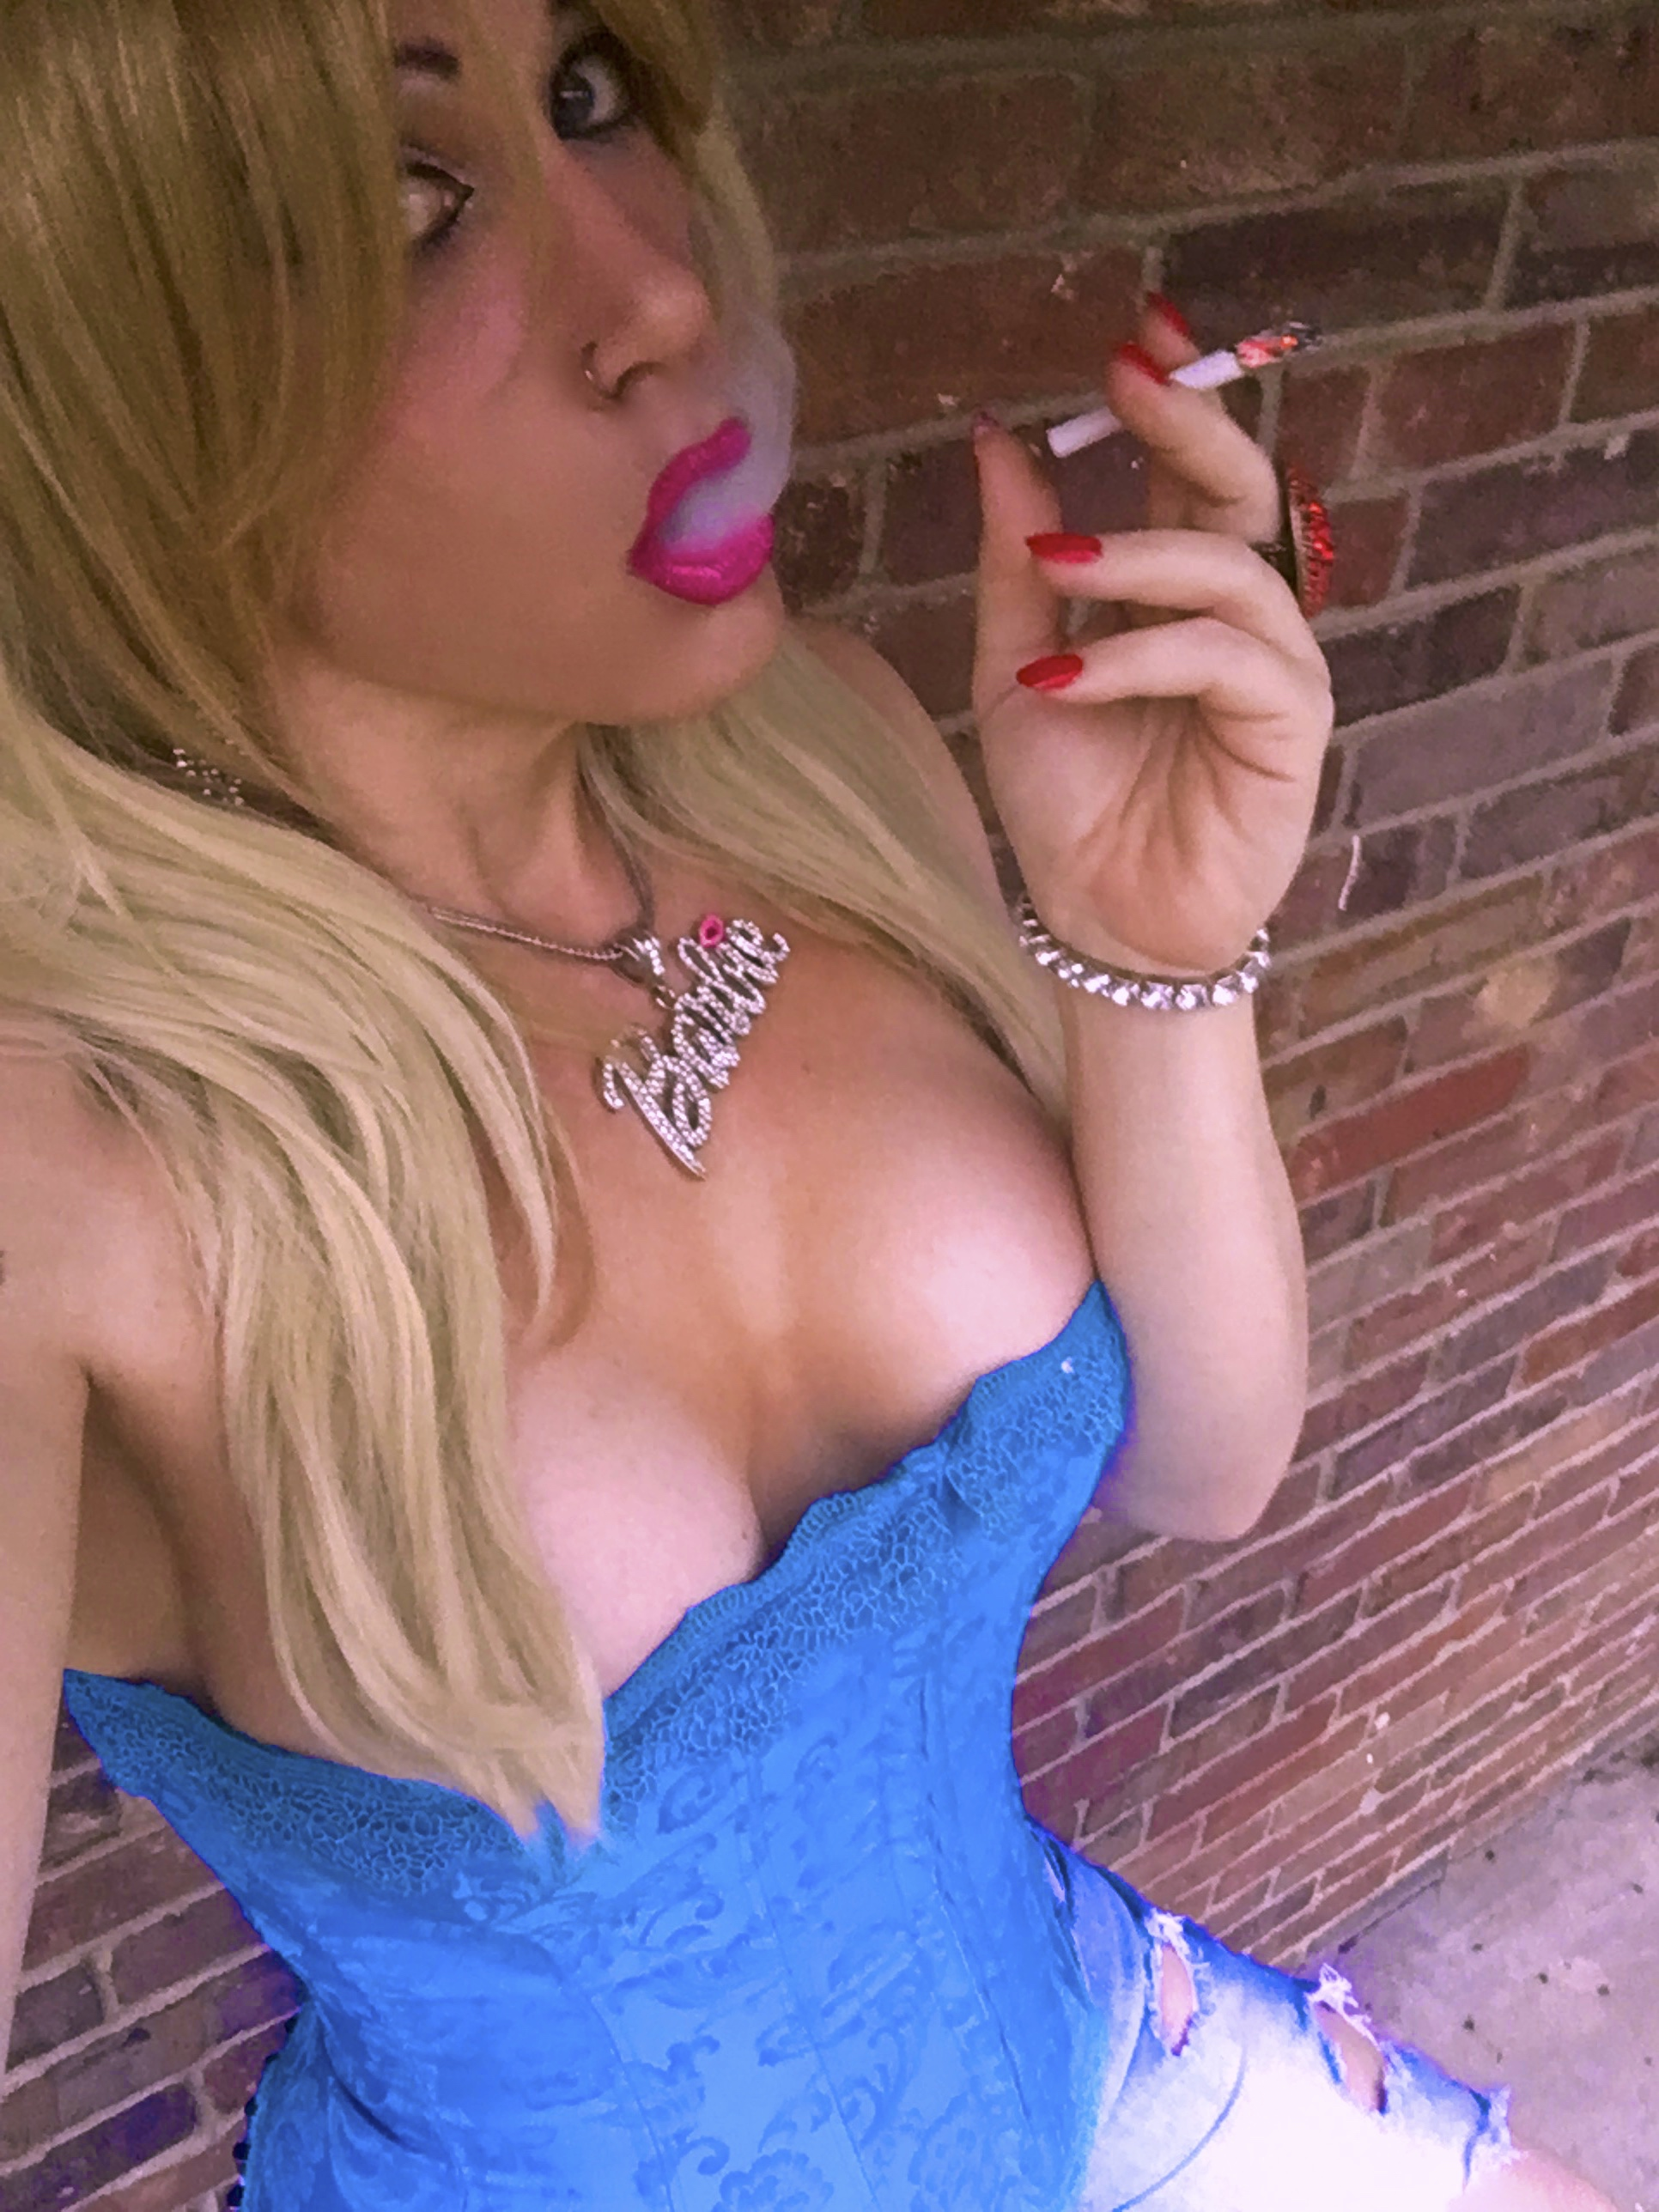 Kimber Haven XXXBios - TS Kimber Haven in sexy bright blue corset and ripped denim shorts - Sexy blonde tgirl Kimber Haven smoking fetish porn pics sfw